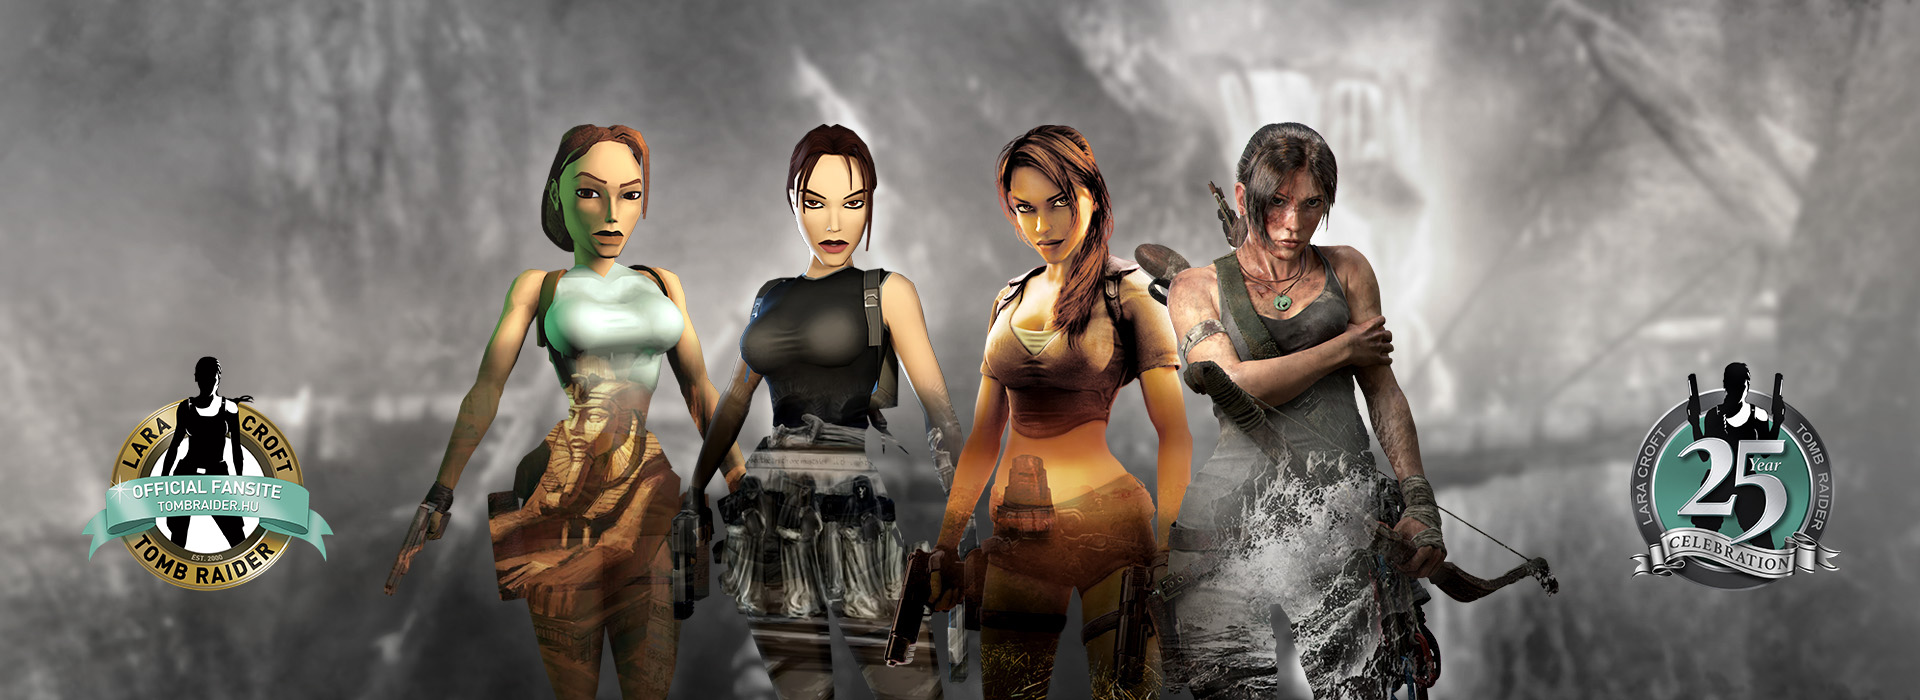 http://tombraider.hu/images/frontpage/bg.jpg